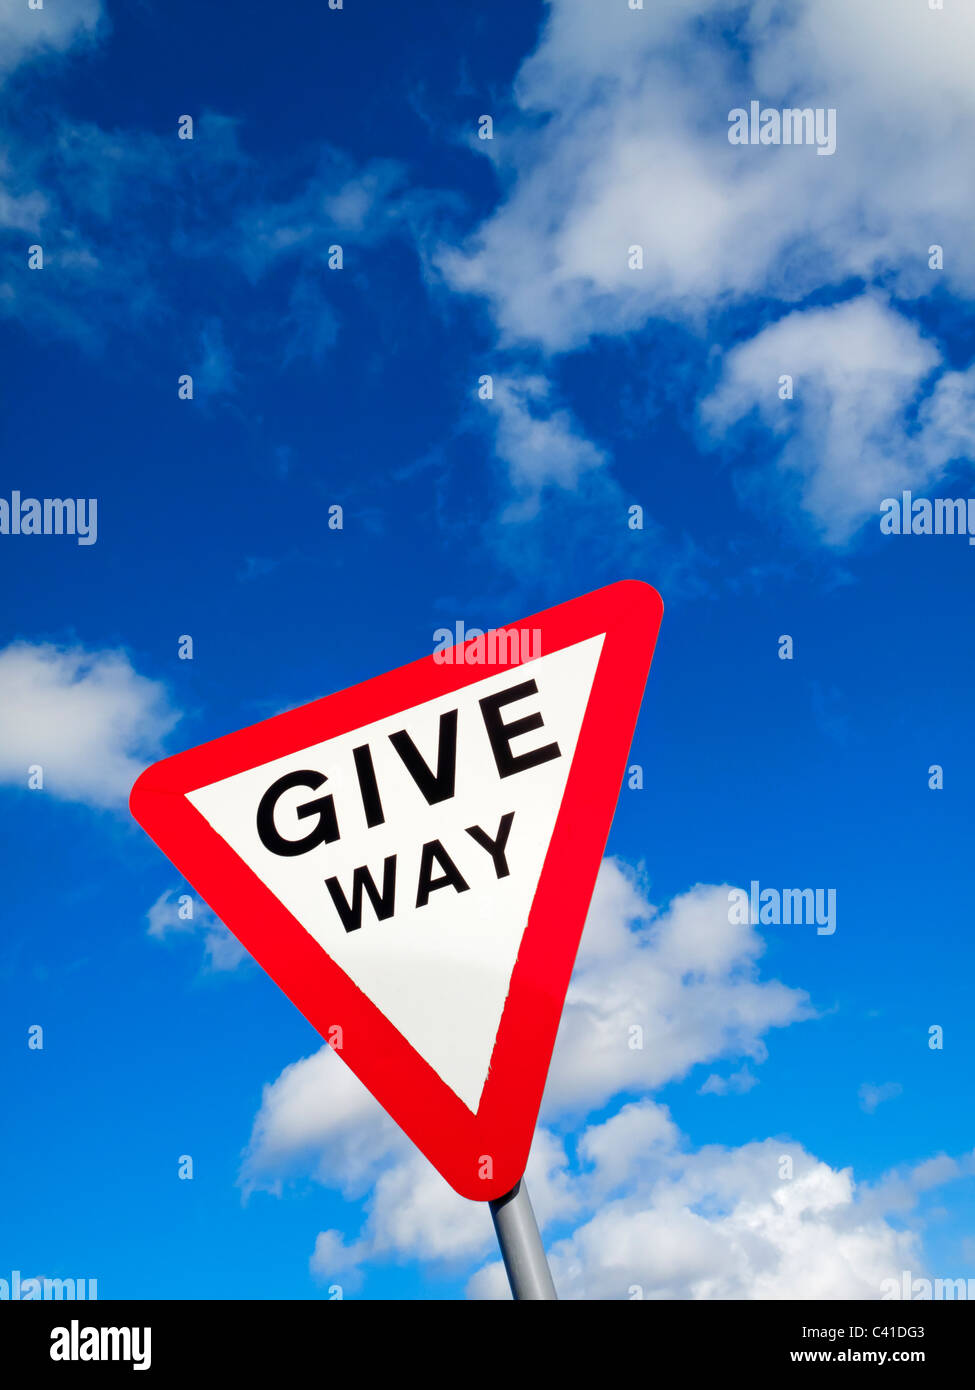 Give Way triangular warning sign on a UK road with blue sky and white clouds visible behind - Stock Image